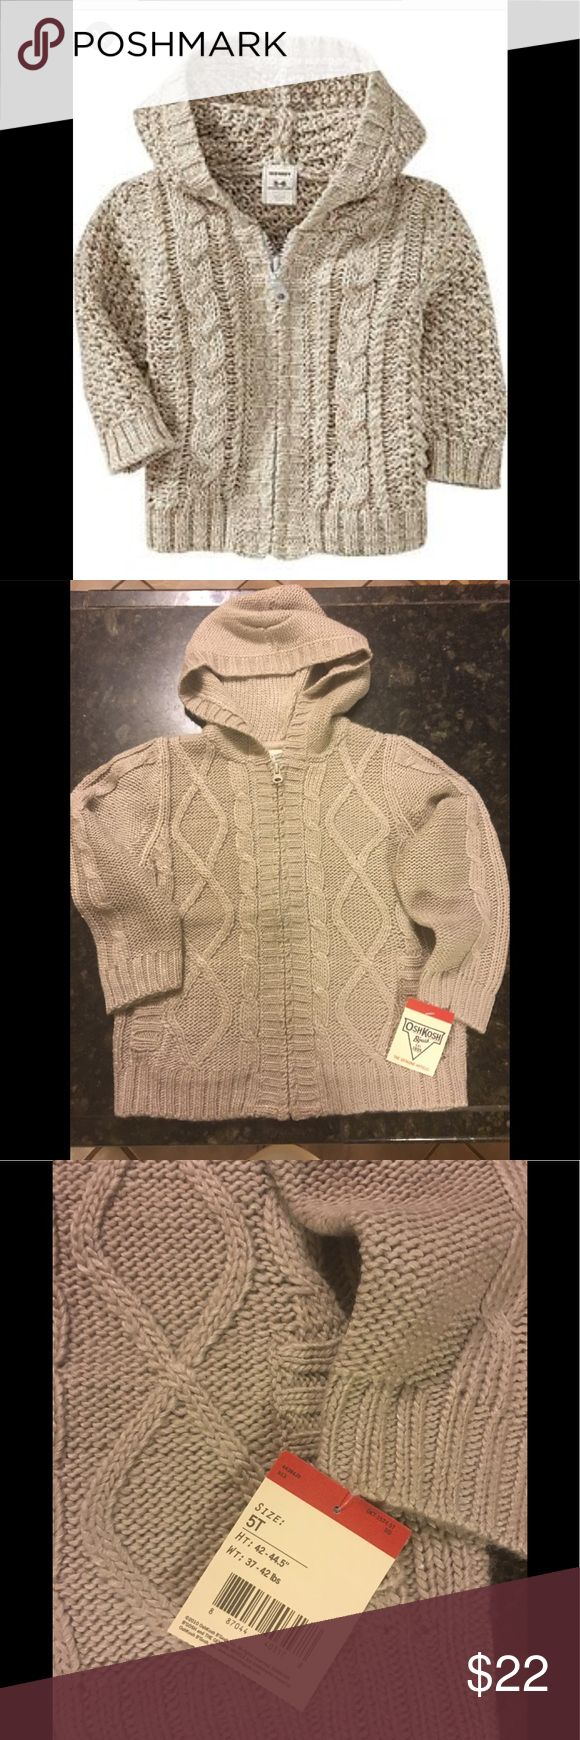 NWT Osh Kosh toddler boy cable knit sweater Very cute zip up sweater with hood.  Light tan/oatmeal color. The last image is a stock photo to show the cable knit pattern.  This sweater does not have Sherpa lining. Osh Kosh Shirts & Tops Sweaters